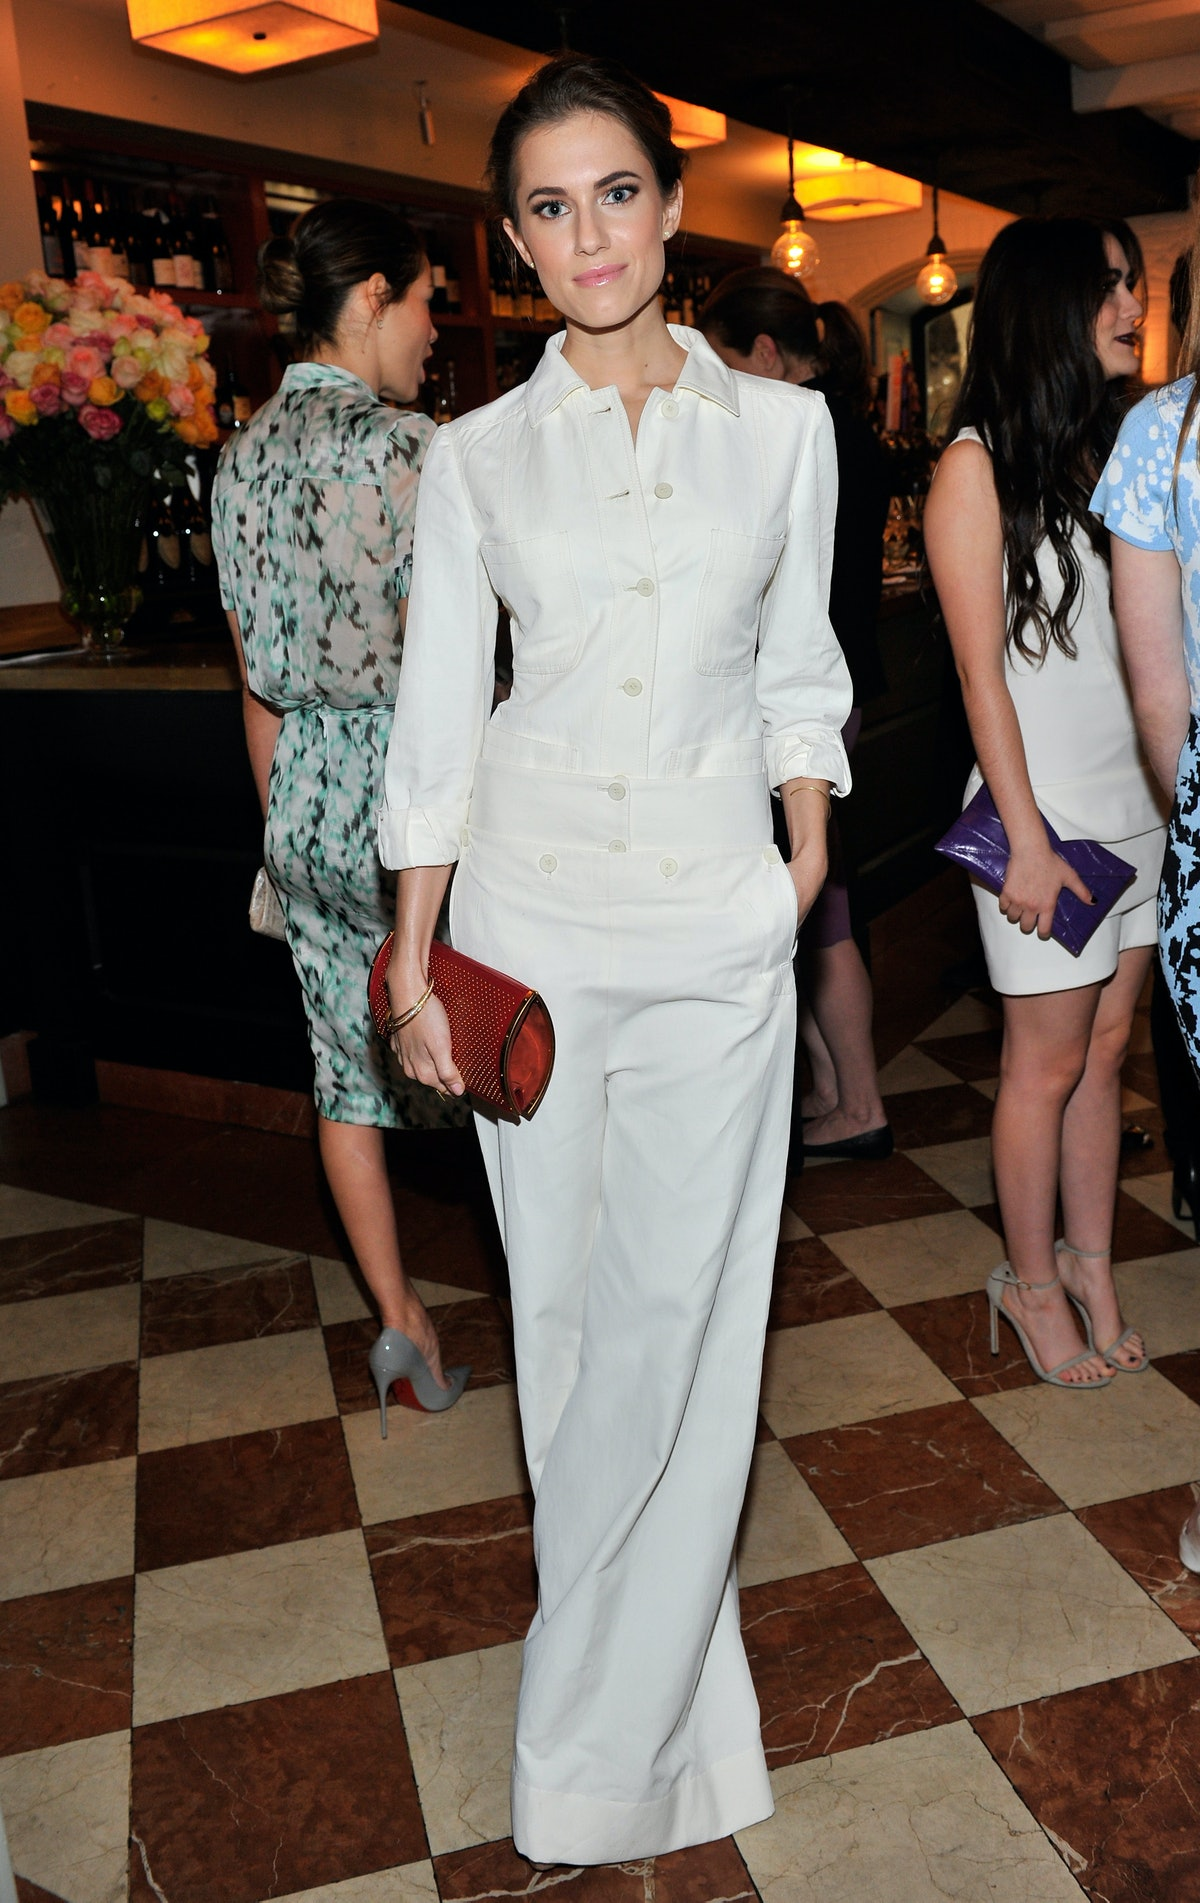 Lynn Hirschberg Celebrates W's It Girls with Piaget and Dom Perignon